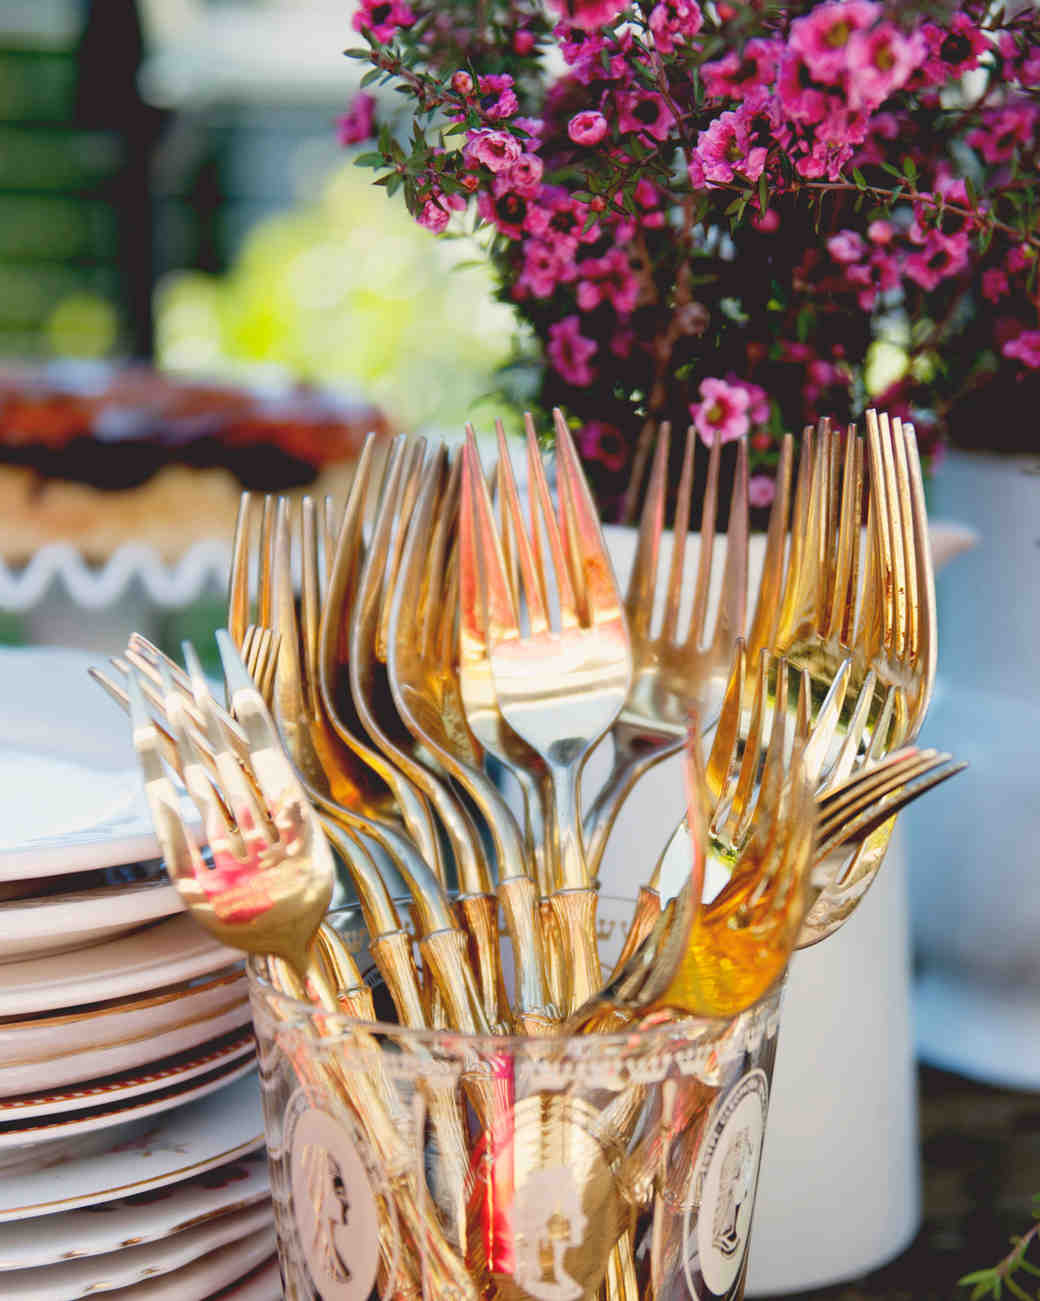 claire-thomas-bridal-shower-garden-golden-cutlery-0814.jpg